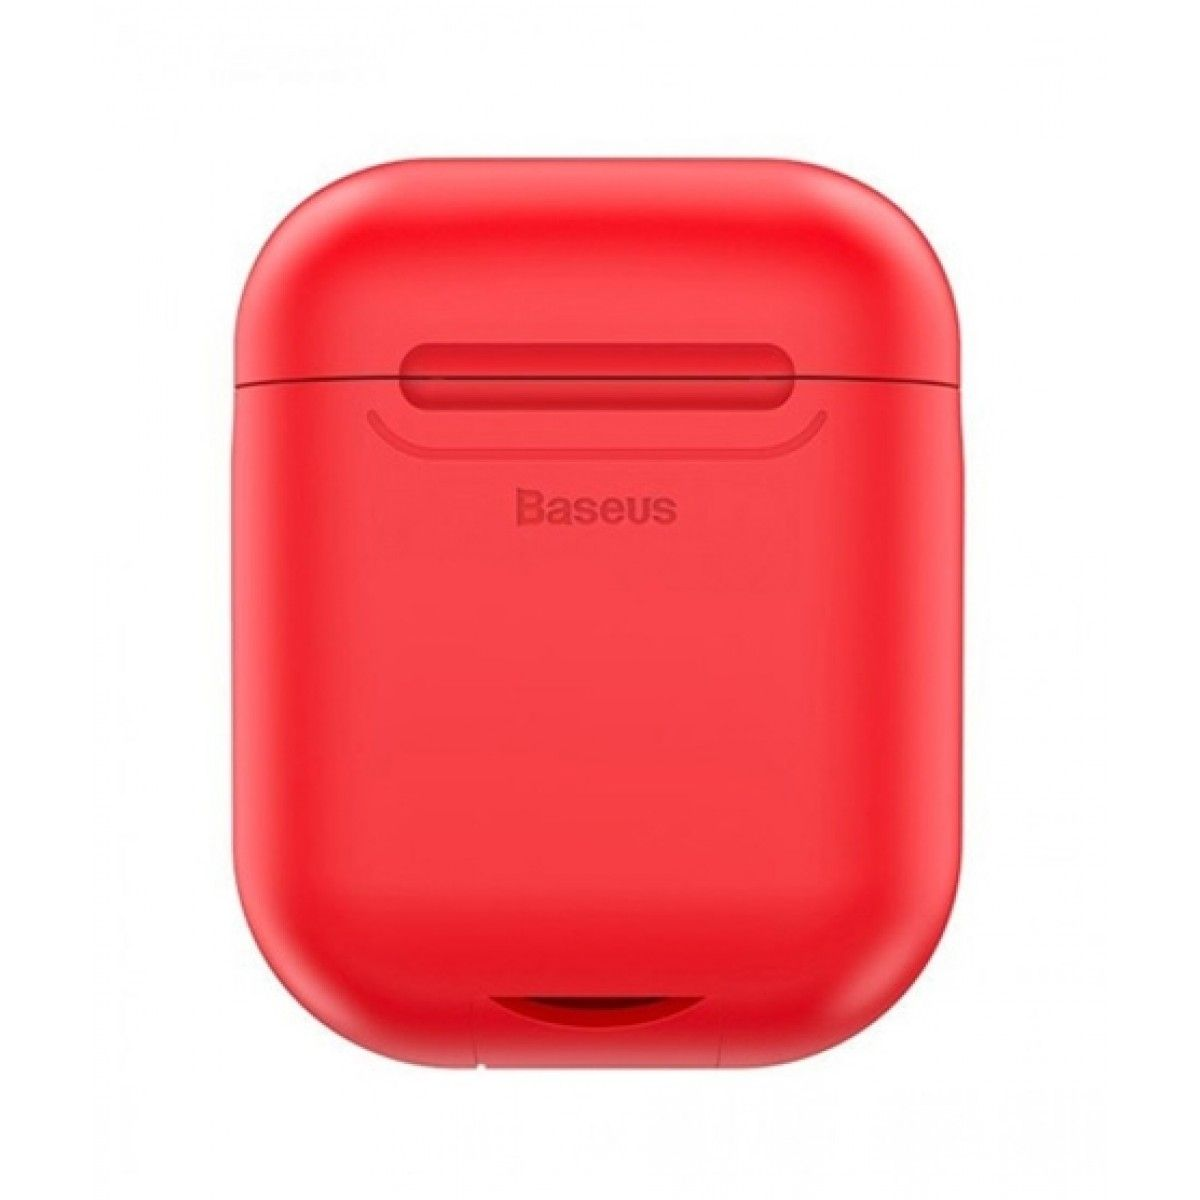 Baseus Wireless 5V-1A Charging Case For Airpods